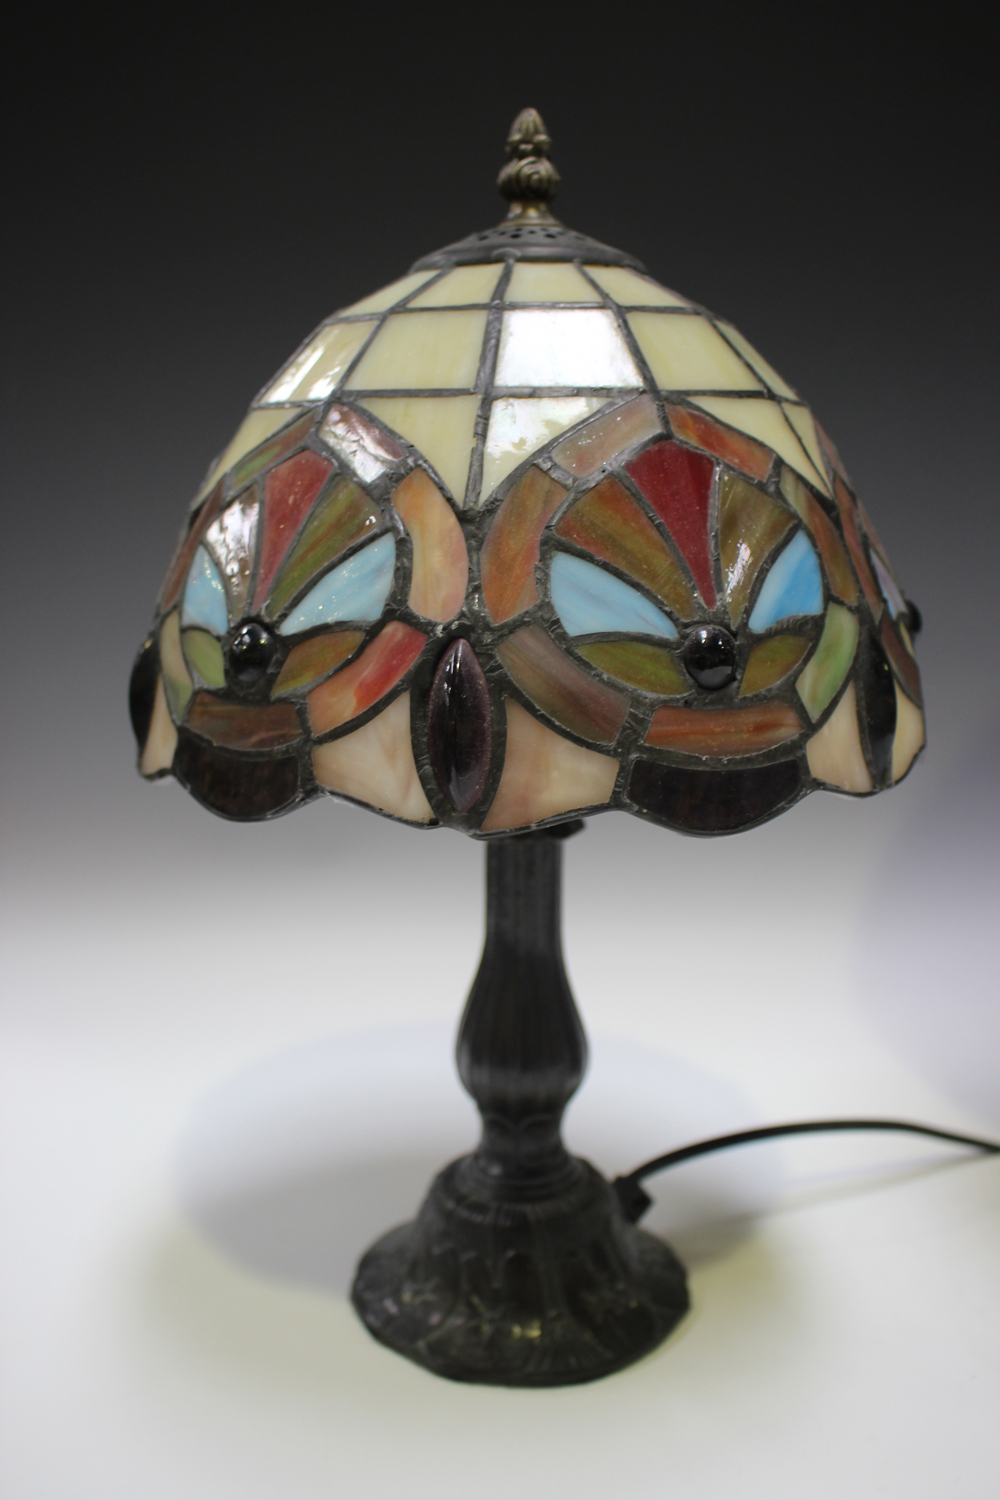 A modern Tiffany style table lamp with a stained and leaded glass domed shade, height 53cm, together - Image 7 of 8